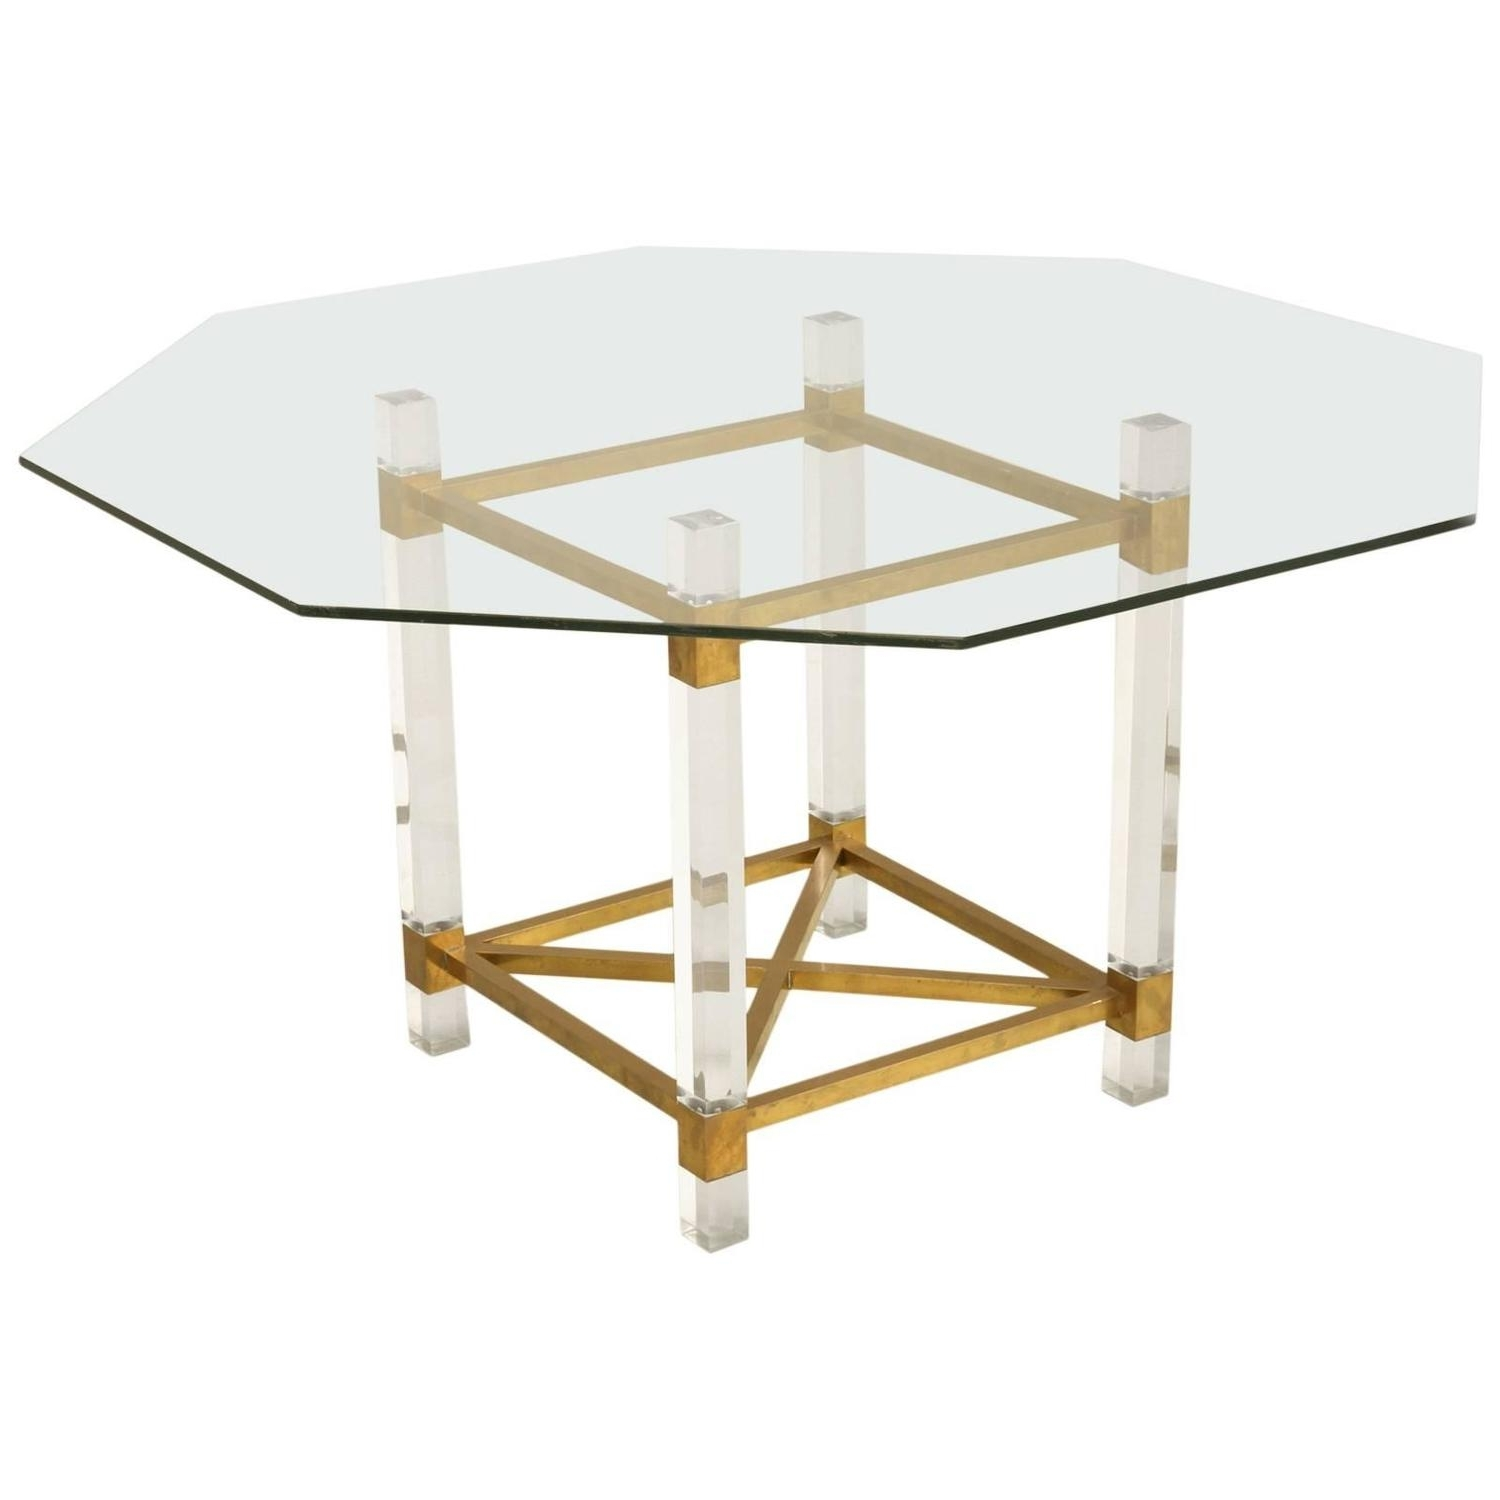 Acrylic Dining Tables In Favorite French Acrylic And Brass Dining Table For Sale At 1Stdibs (View 11 of 25)